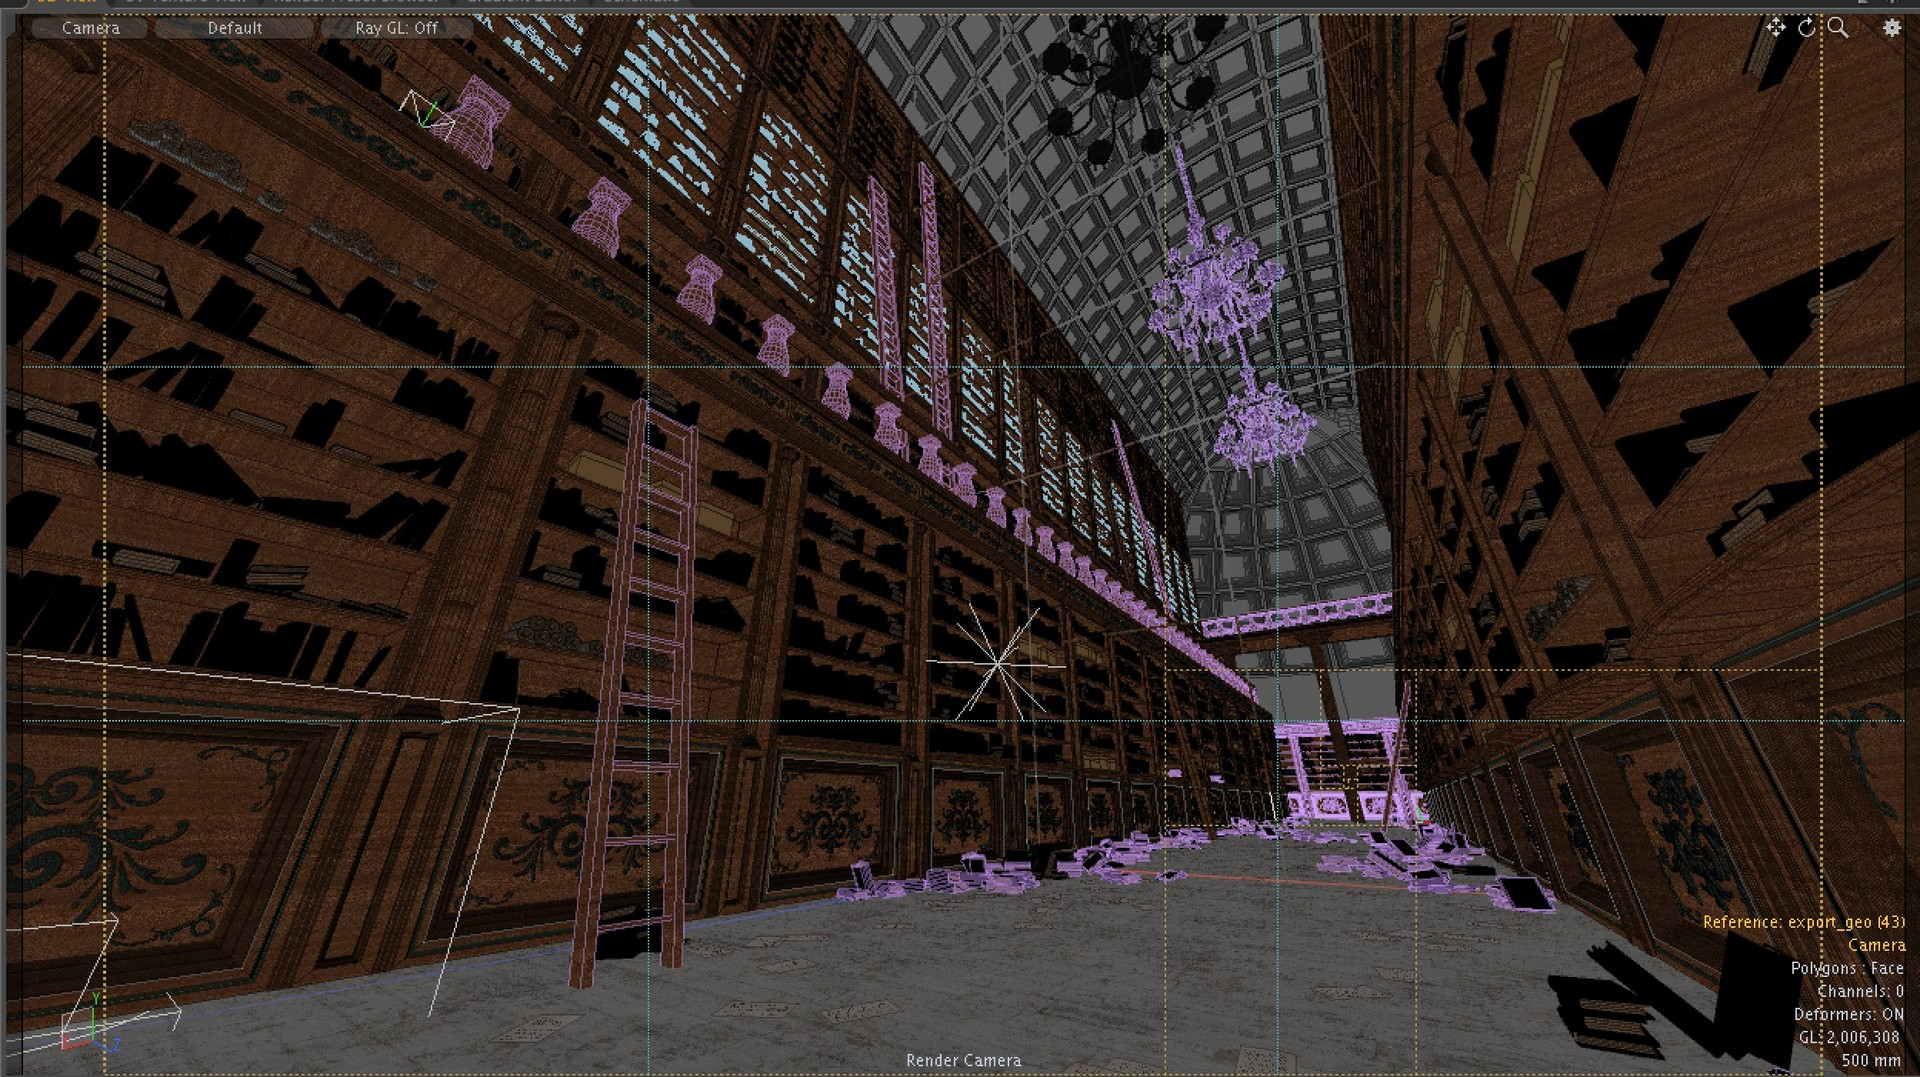 Wireframe in Modo. Note that all the books are replicated (instance) objects as well as the bookshelves.